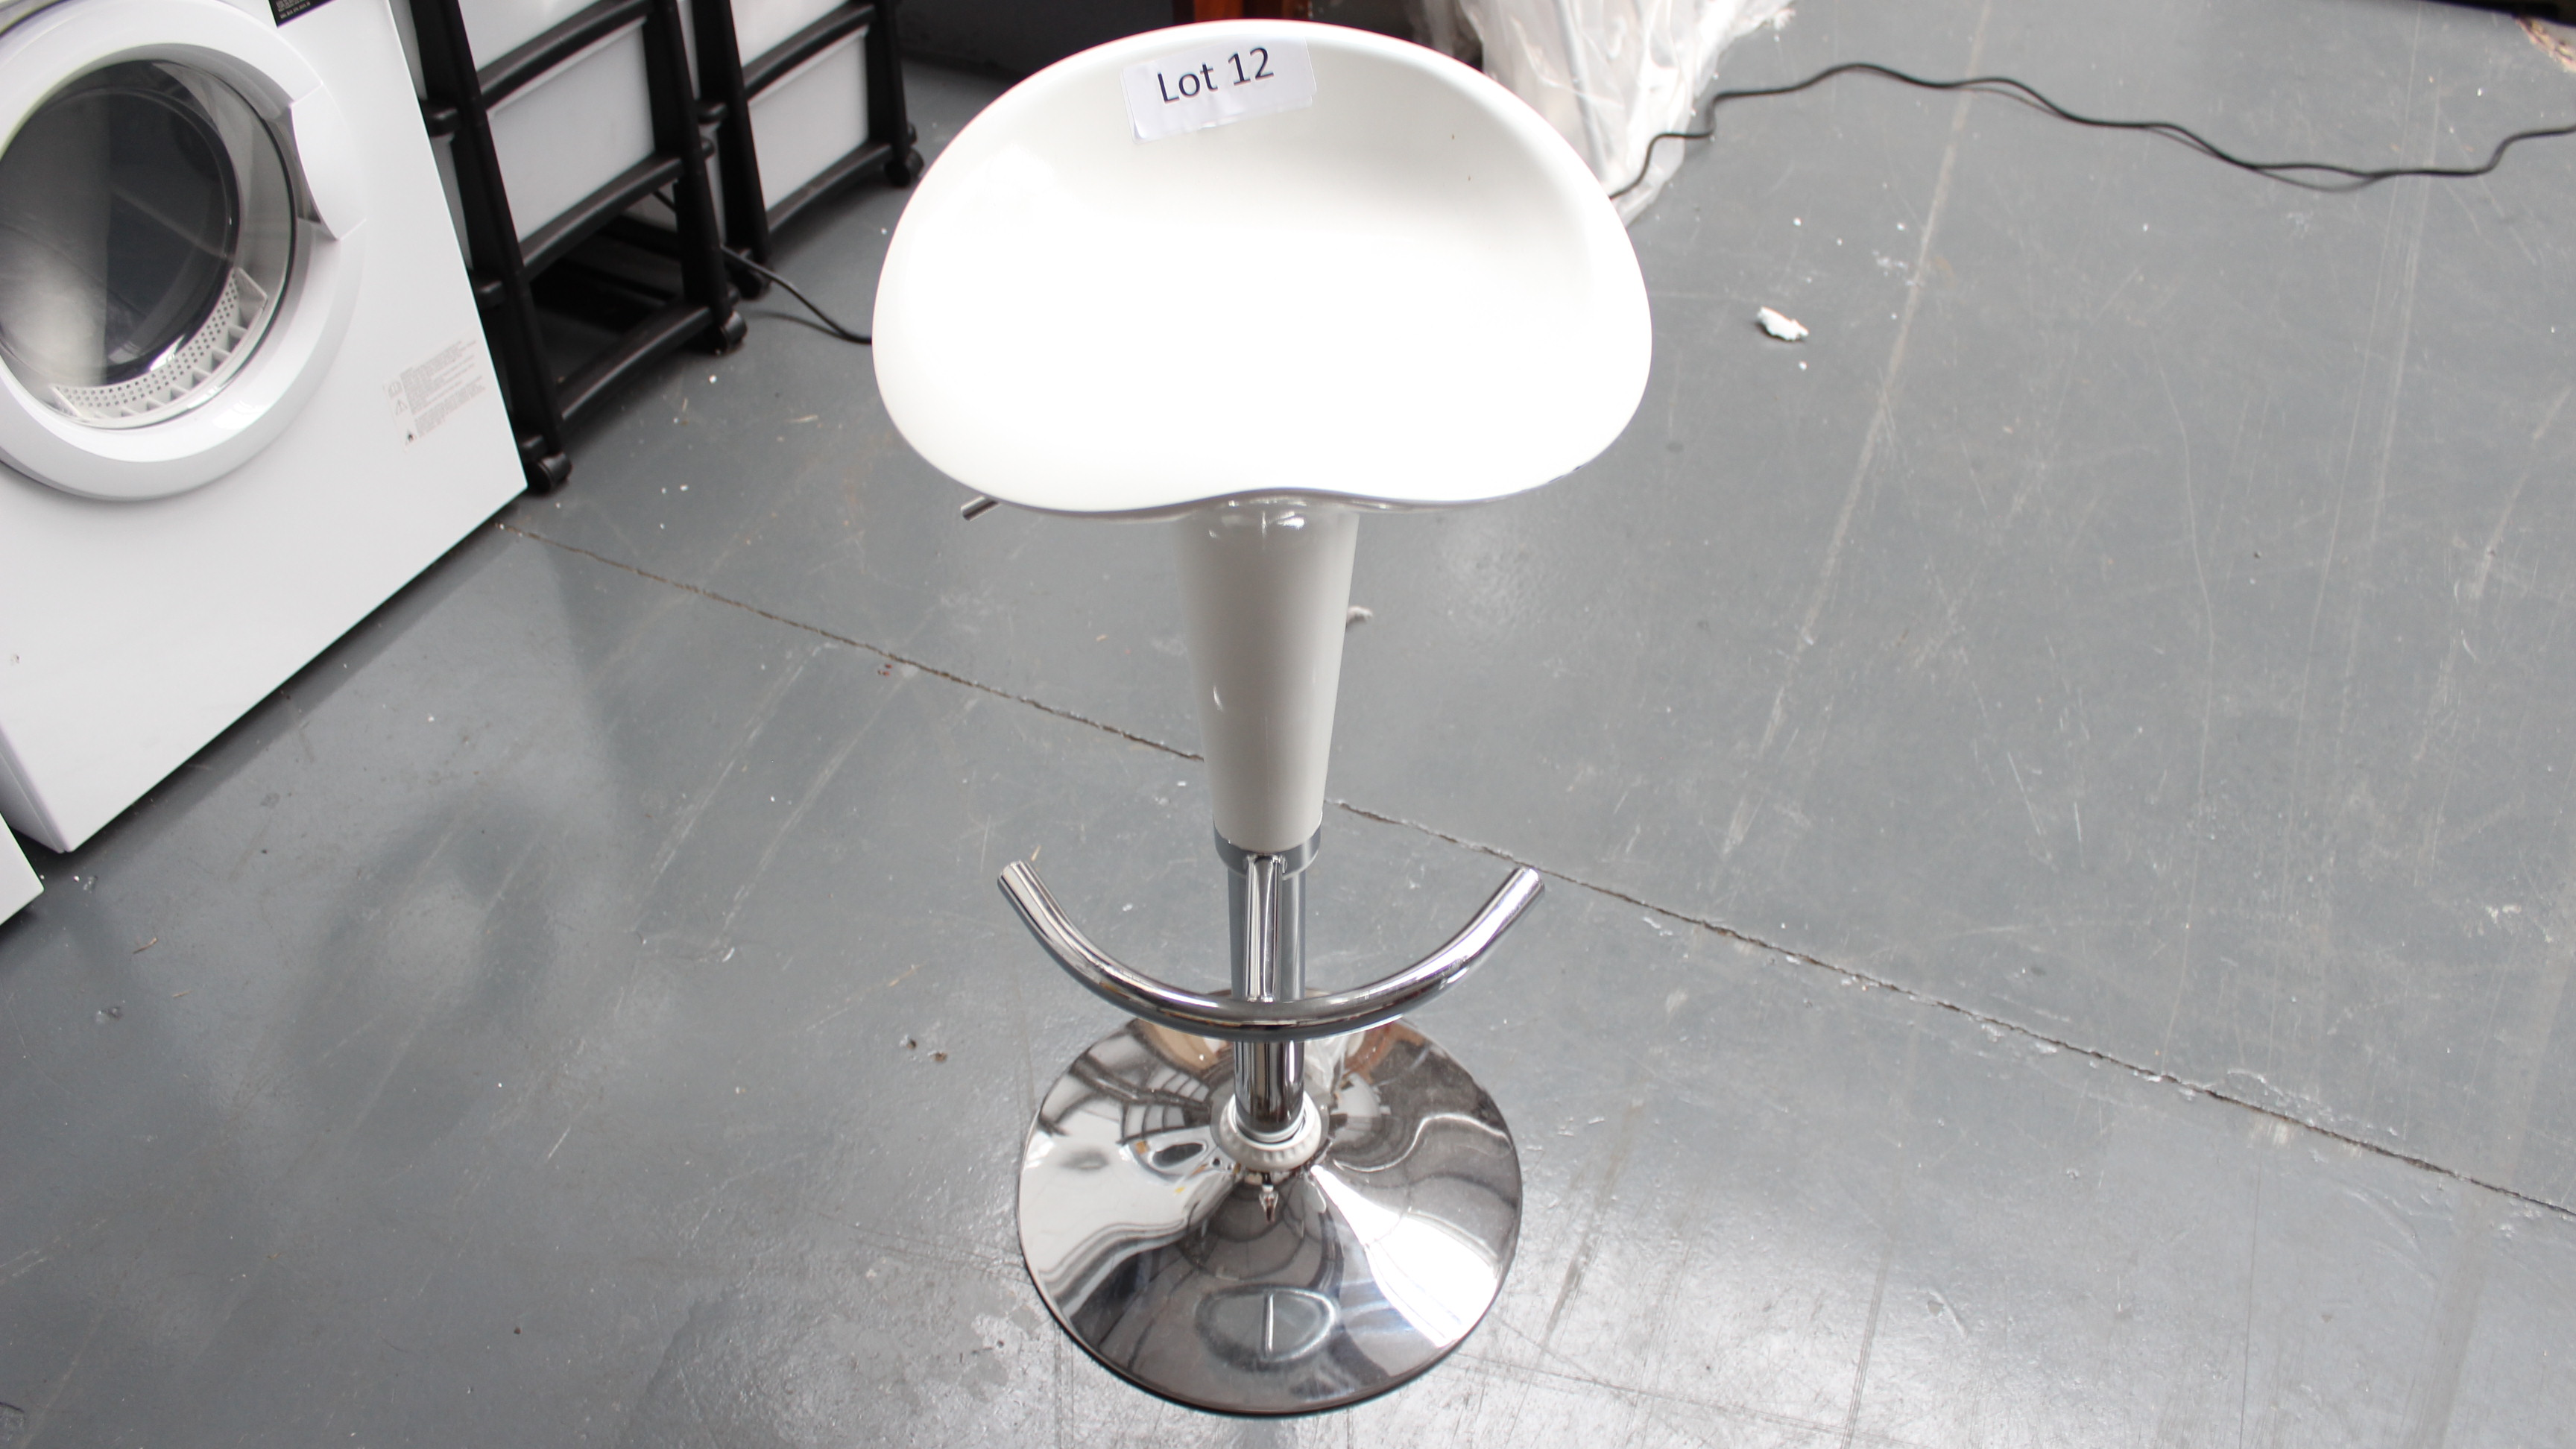 Lot 12 - White Bar Stool Customer Returns